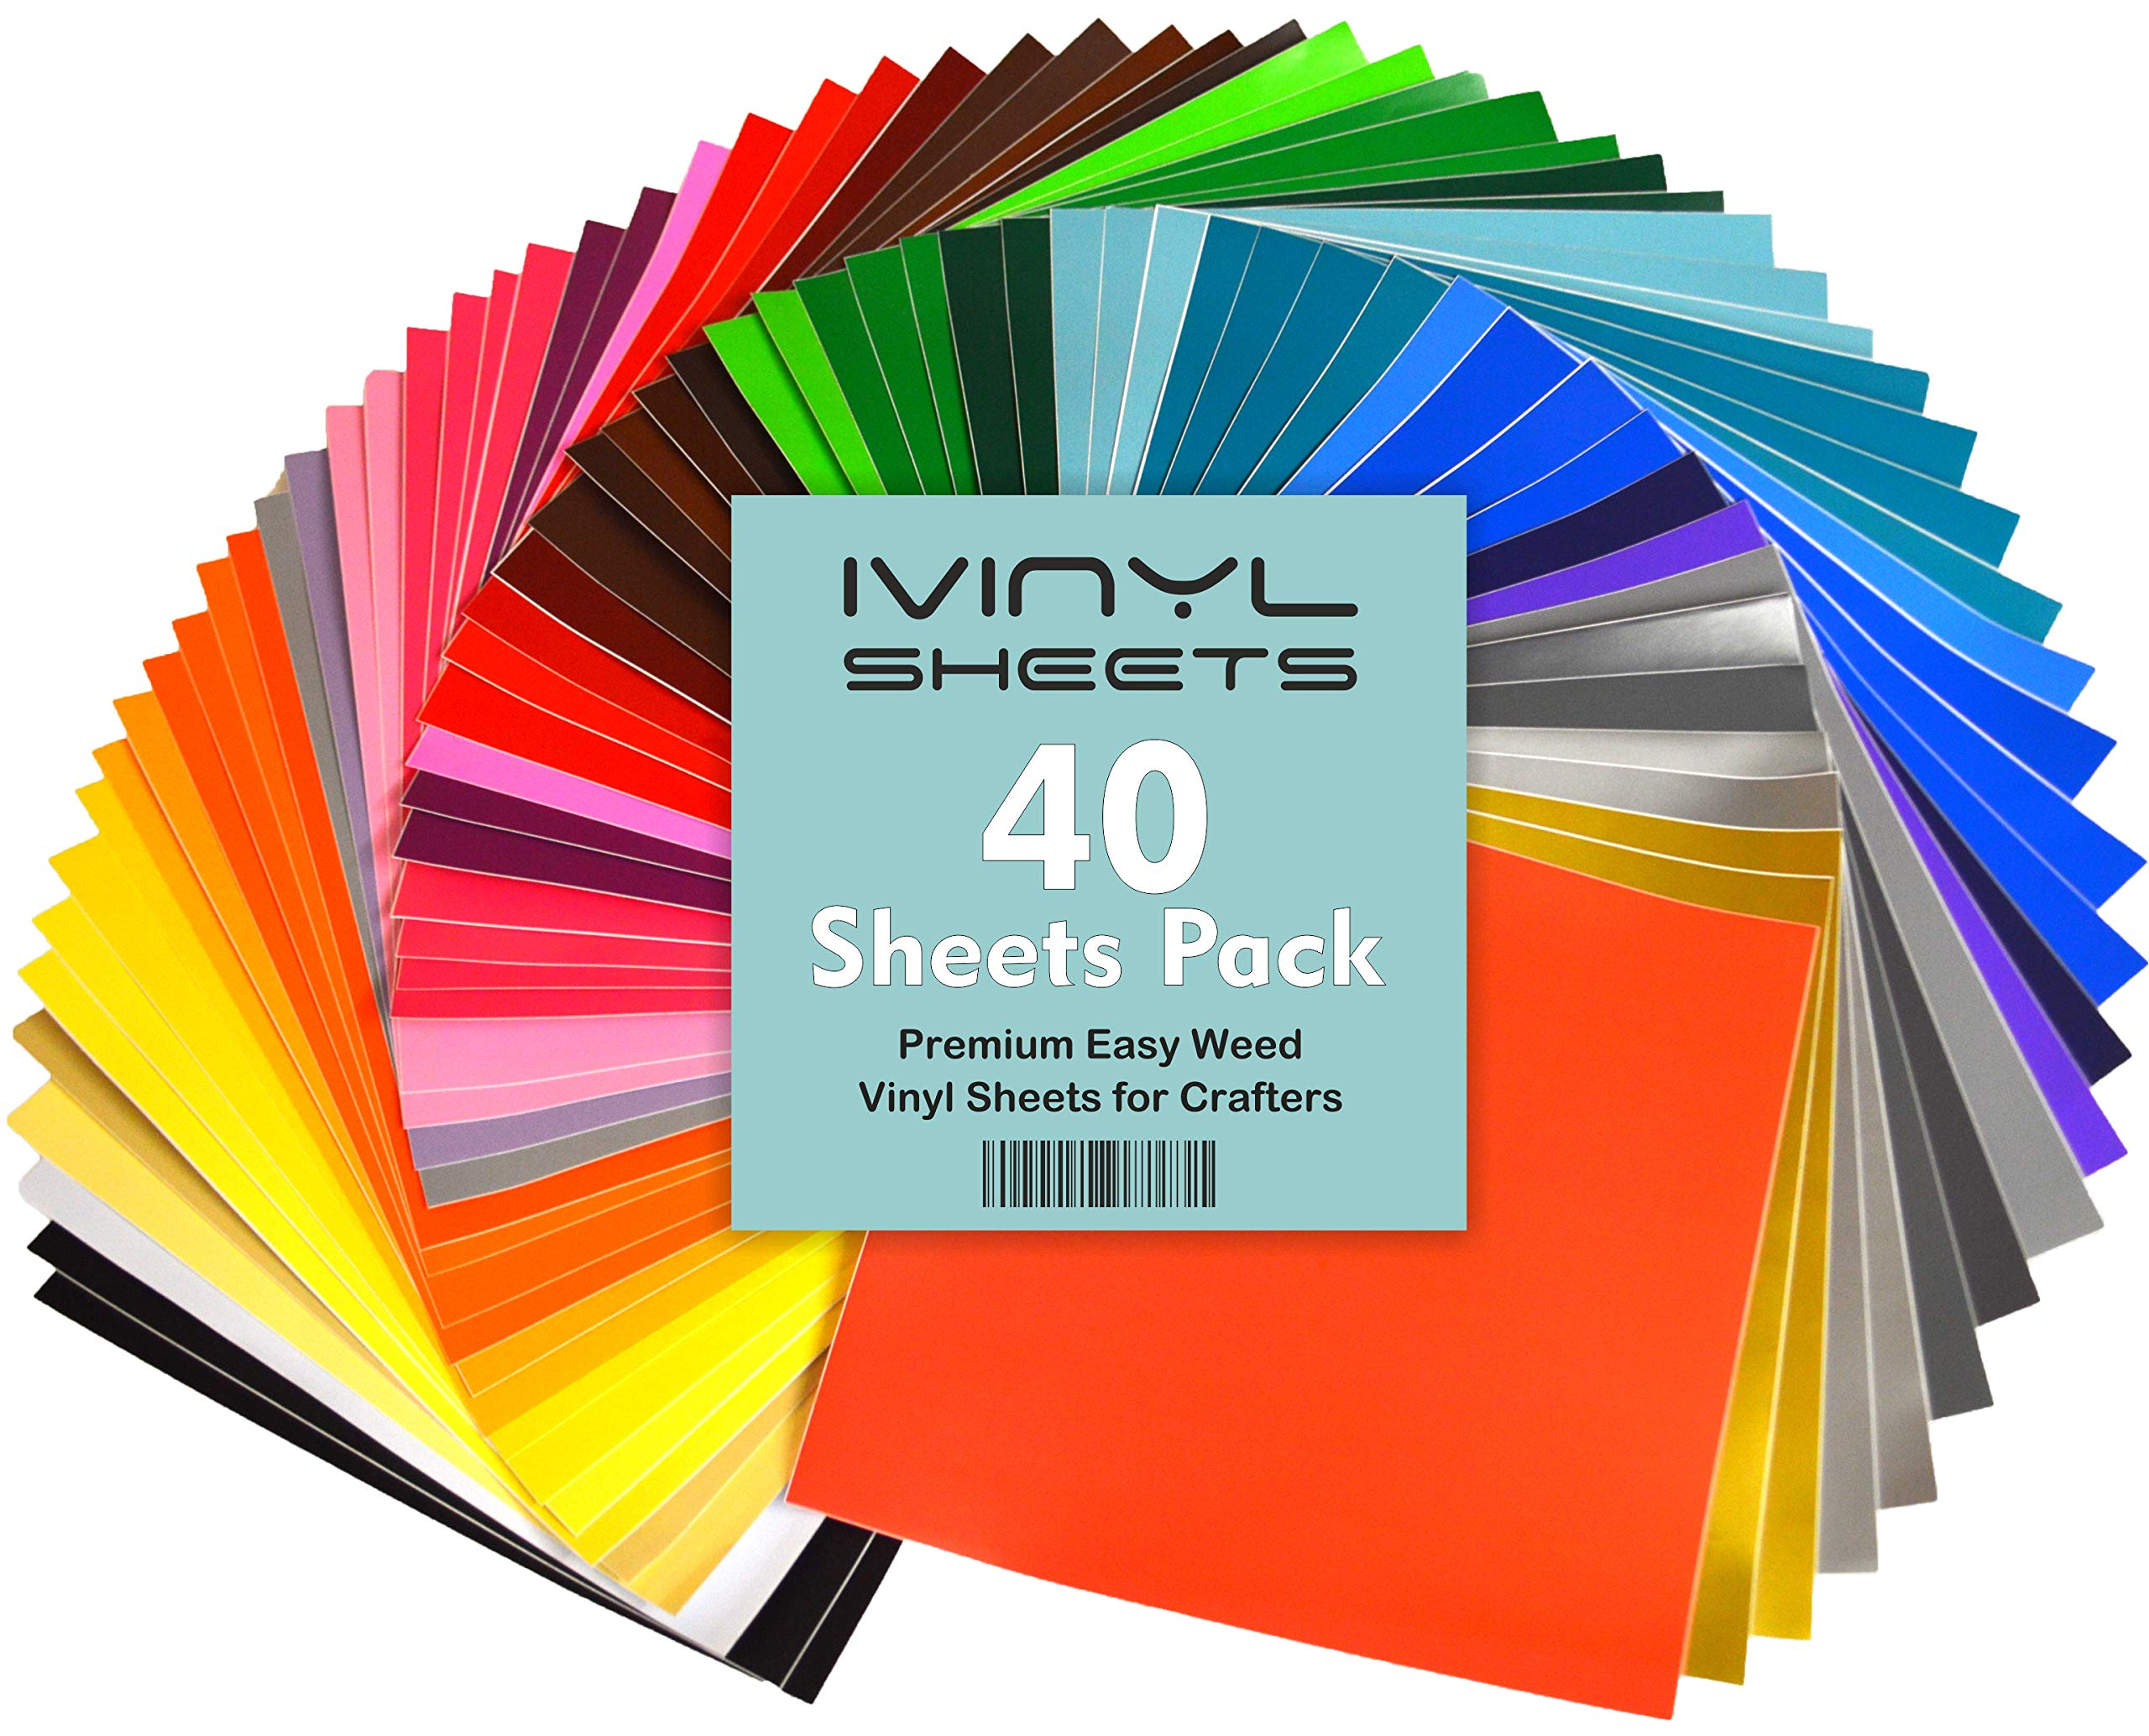 iVinyl - 40 Adhesive Sheets 12'' x 12'' Premium Permanent Self Adhesive Backed Vinyl Sheets - 40 Glossy & Matt Assorted Colors Sheets for Cricut, Craft Cutters, Silhouette Cameo & Crafting Machines